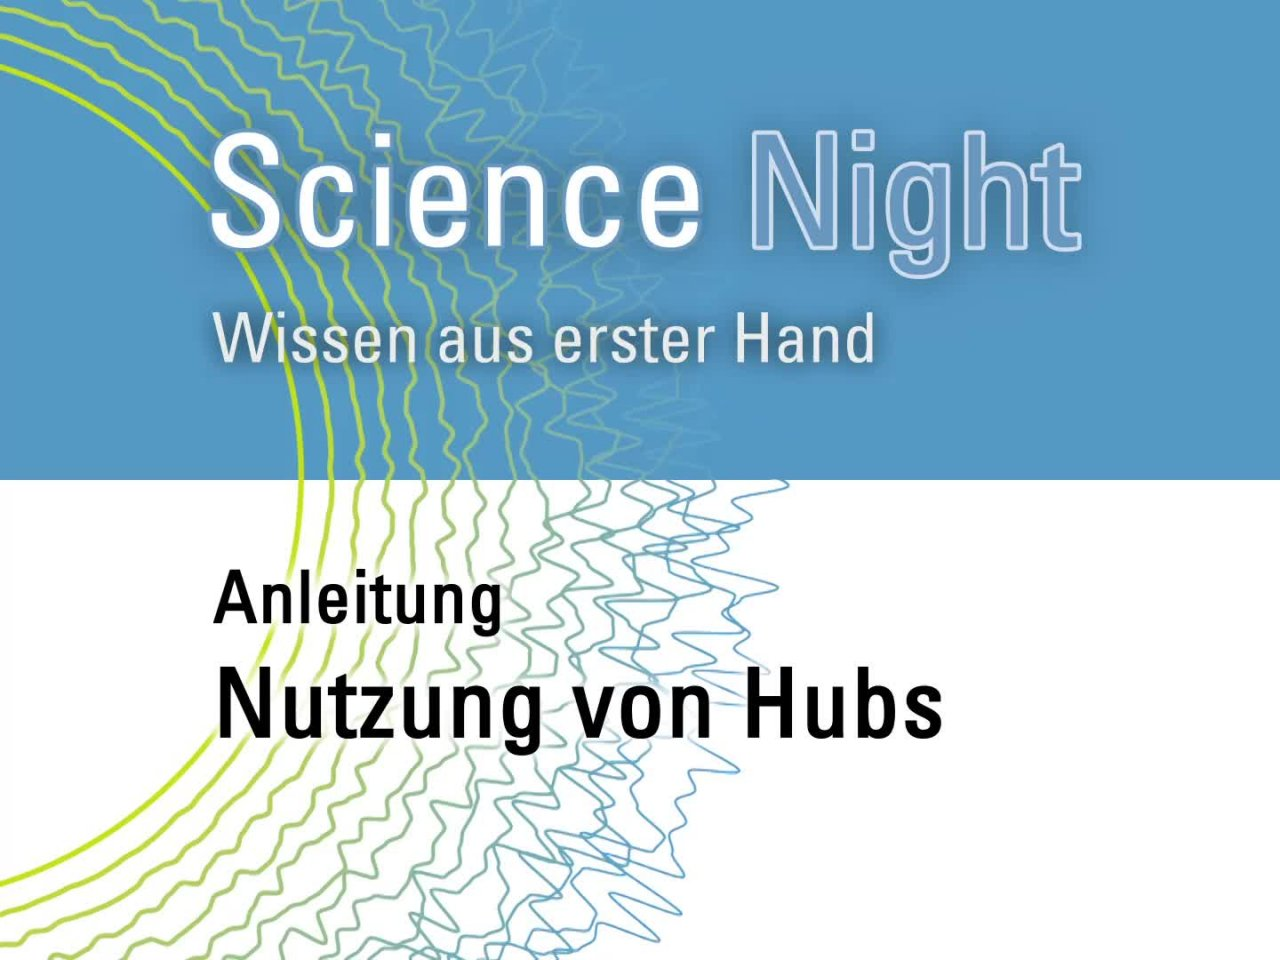 Science Night 2020 – Mozilla Hubs Anleitung